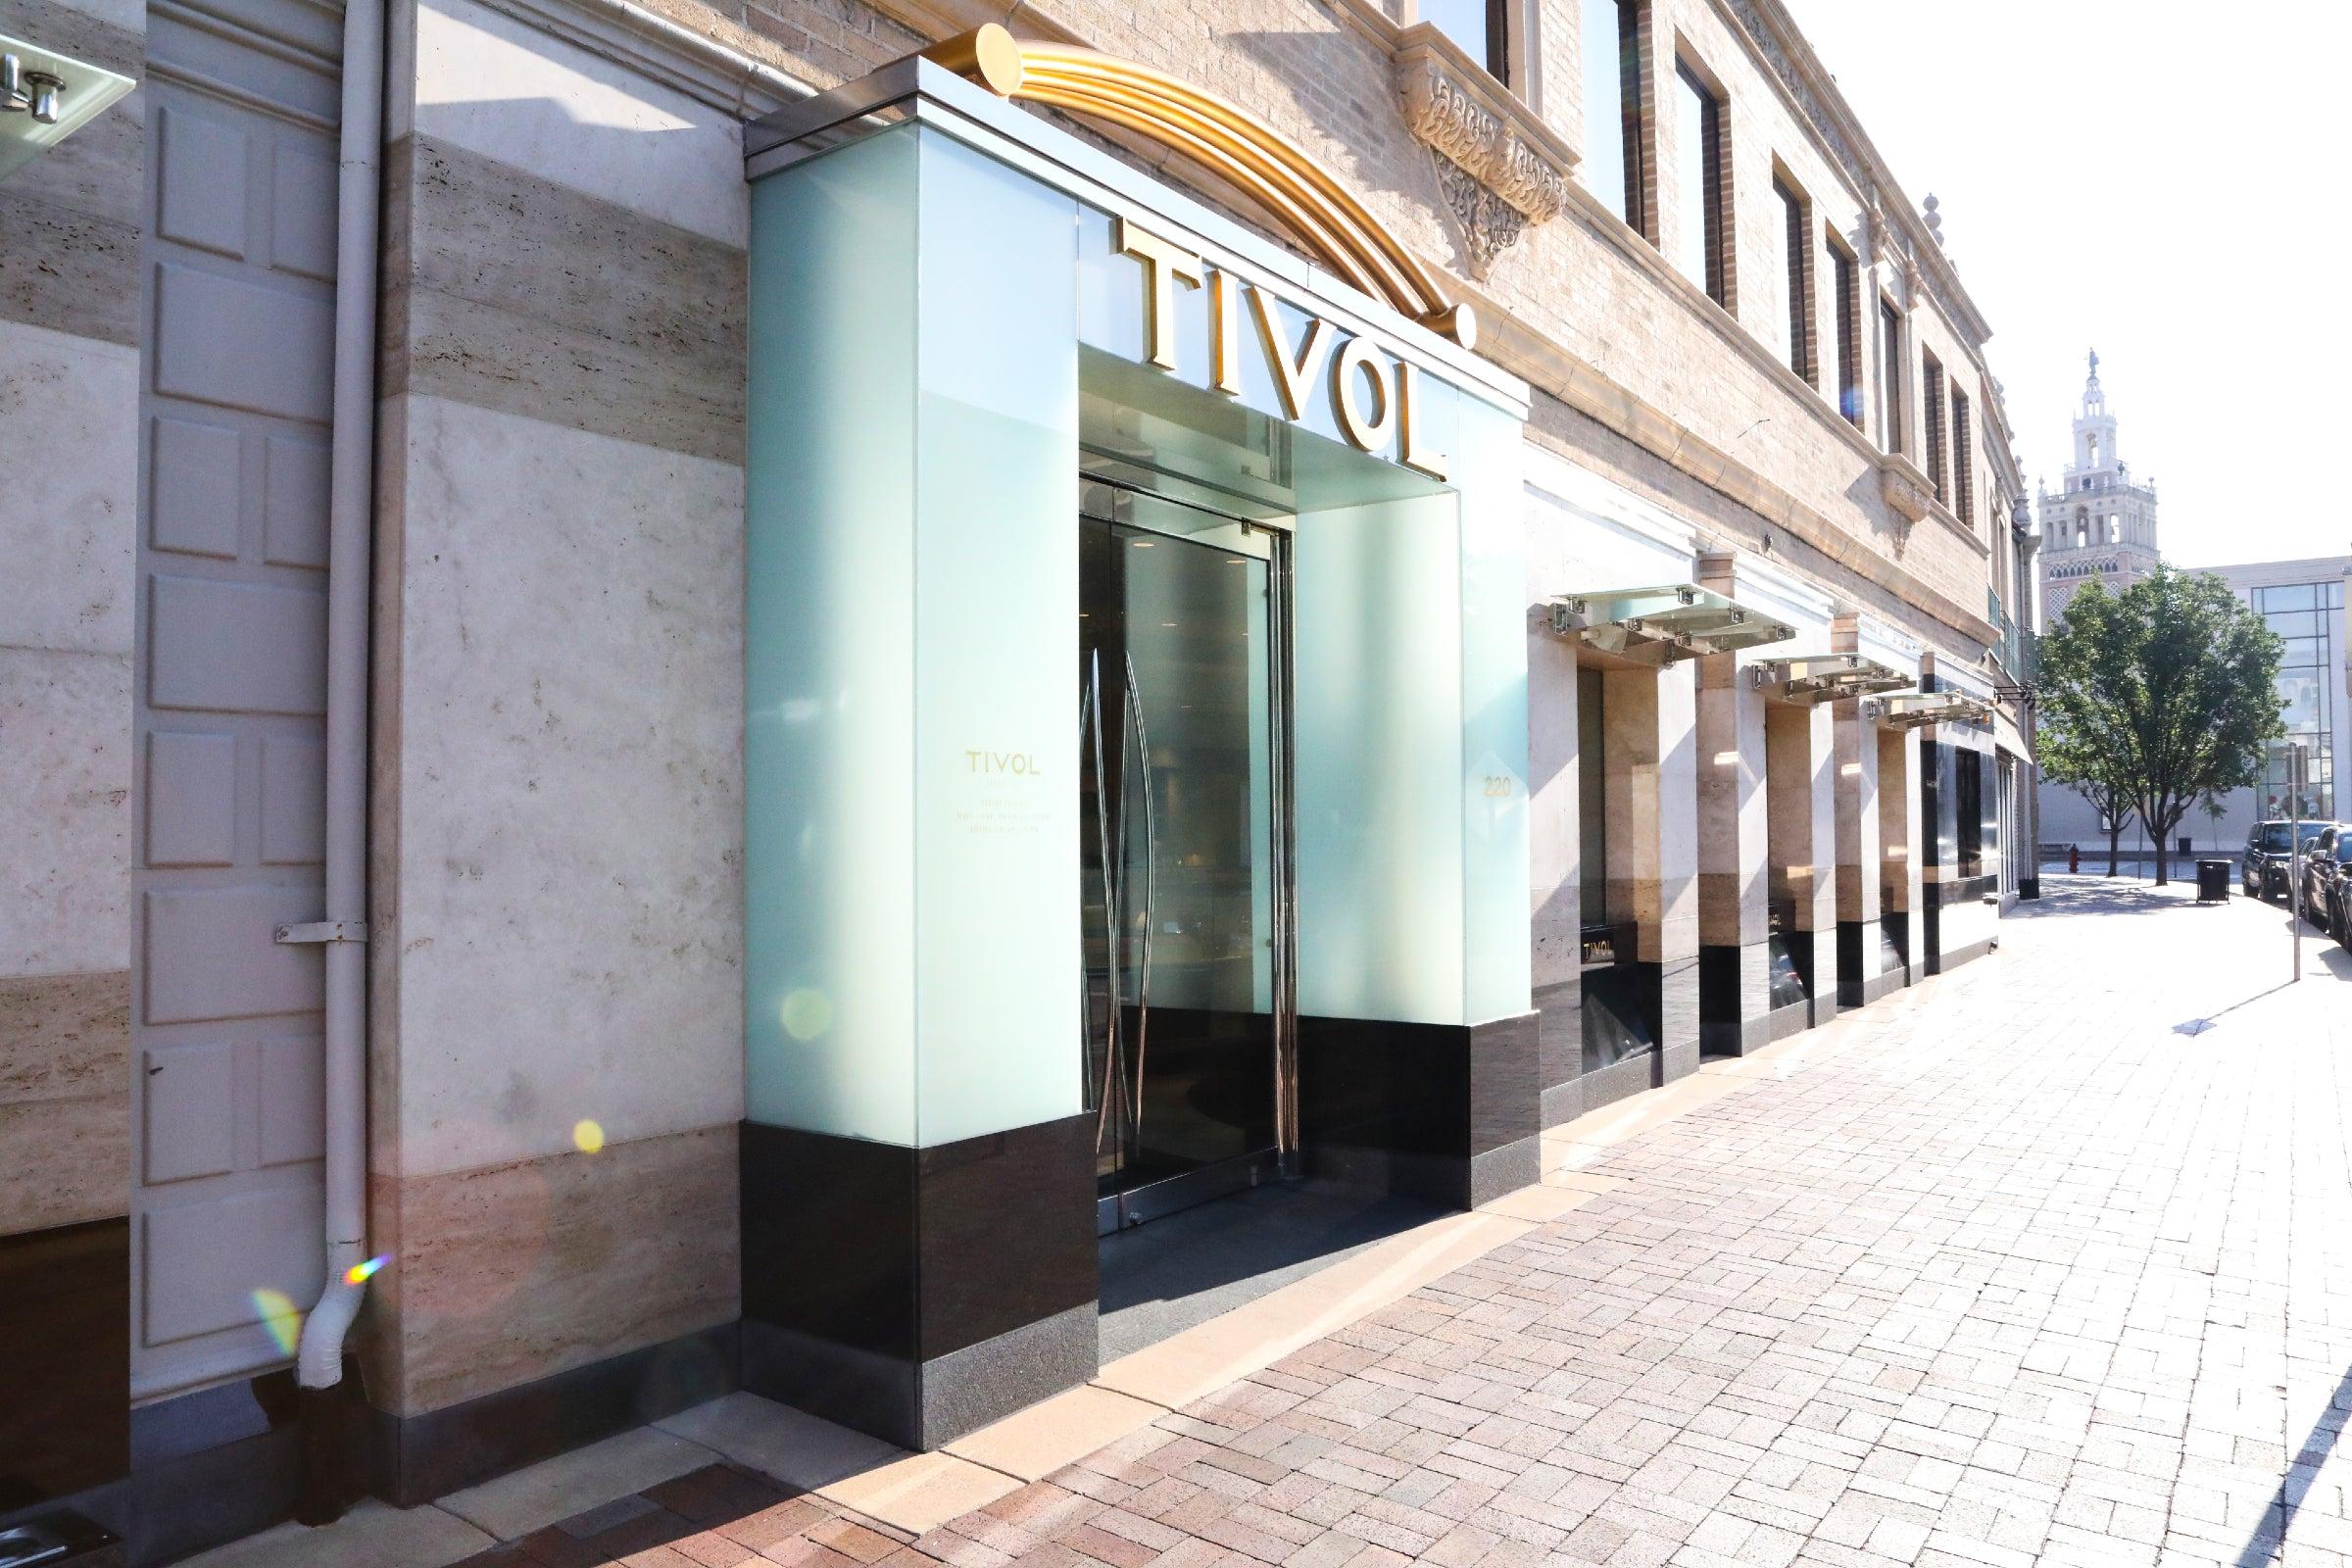 TIVOL on the Country Club Plaza Store Front